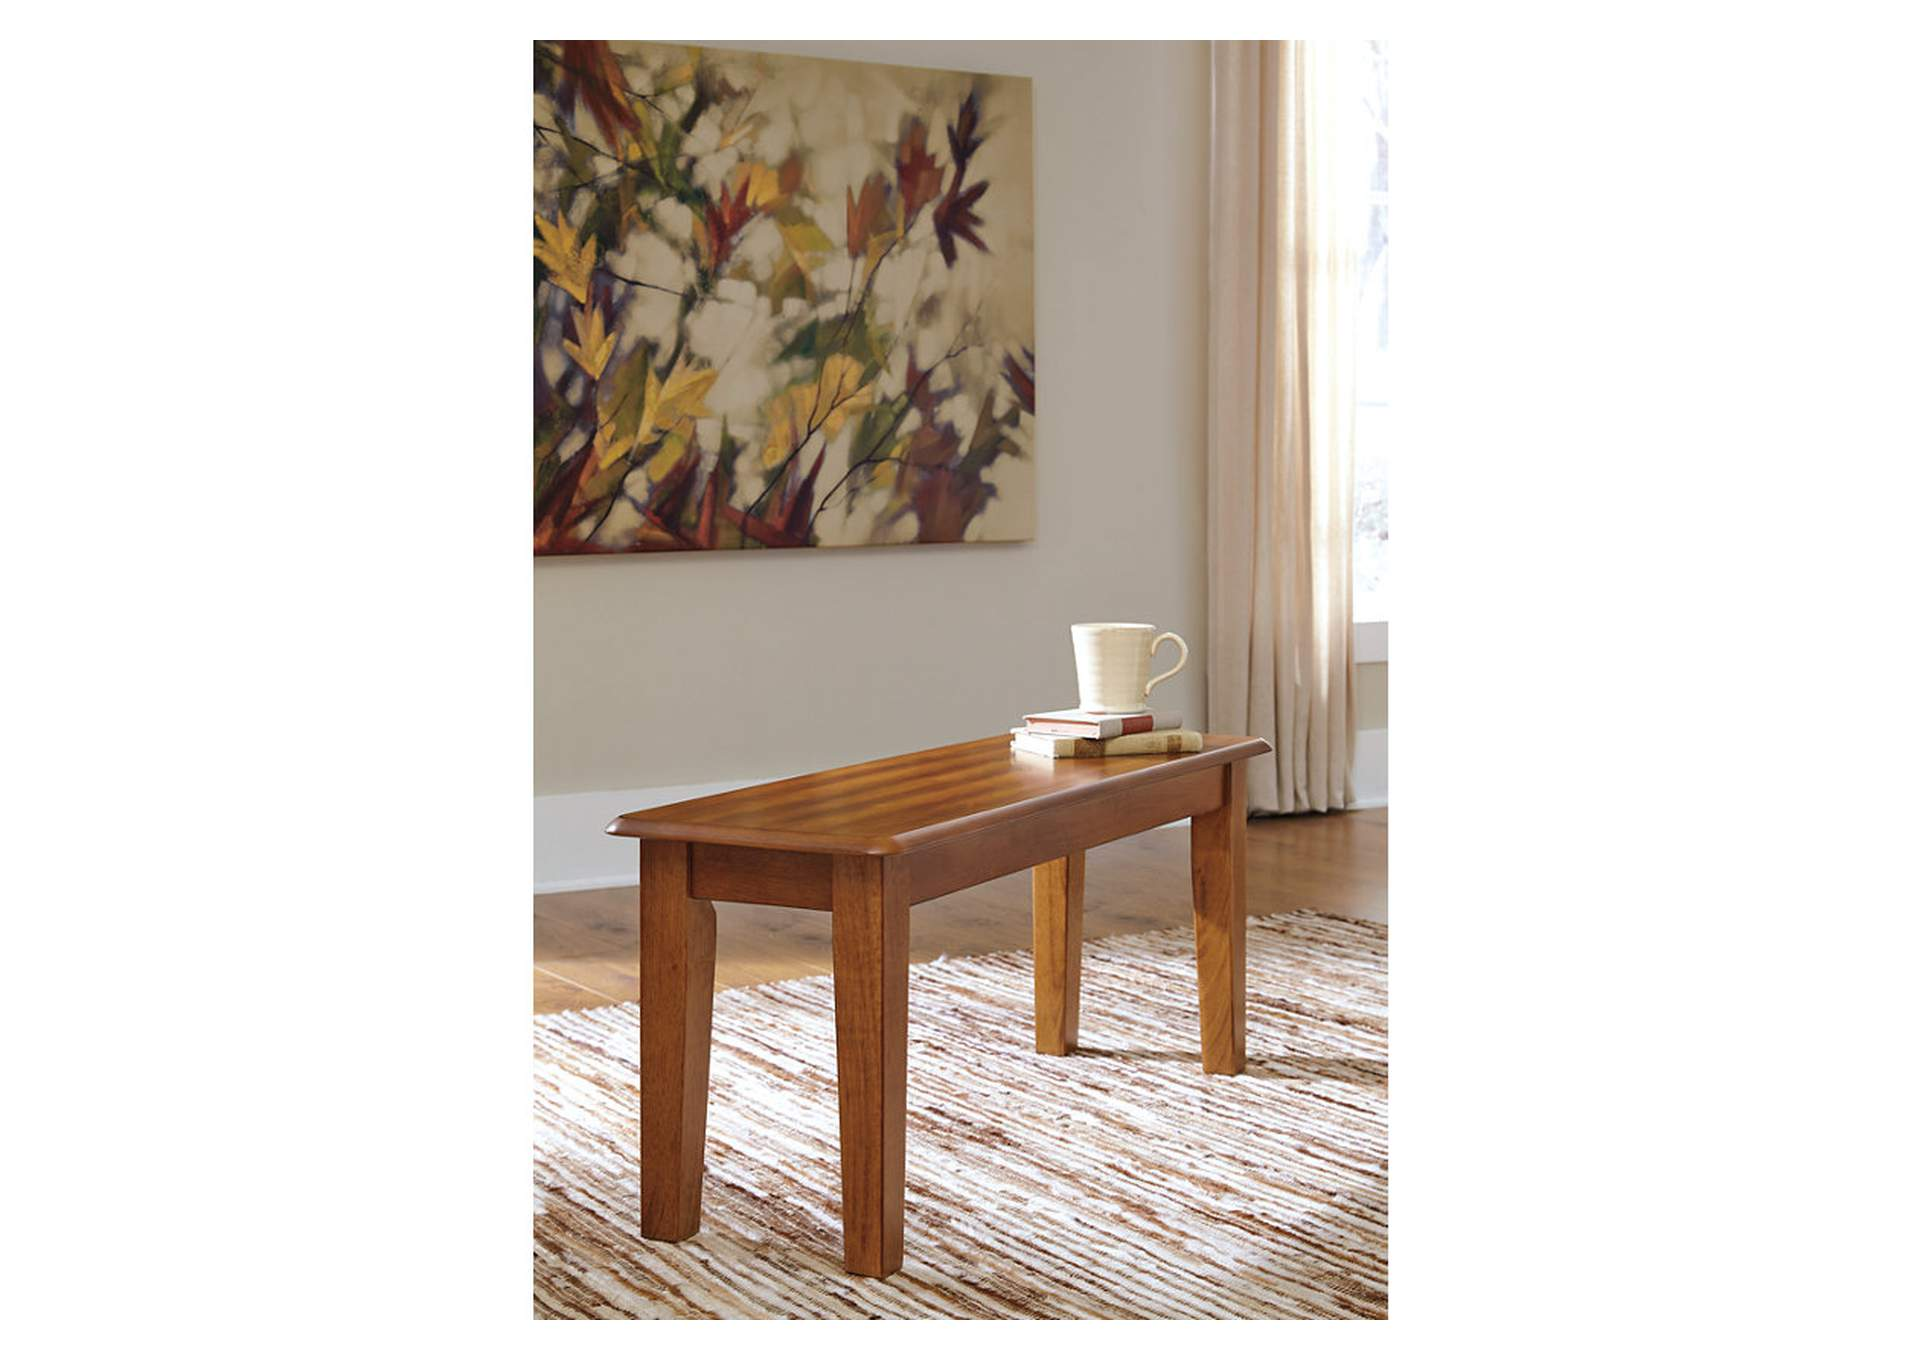 Berringer Large Dining Room Bench,Ashley